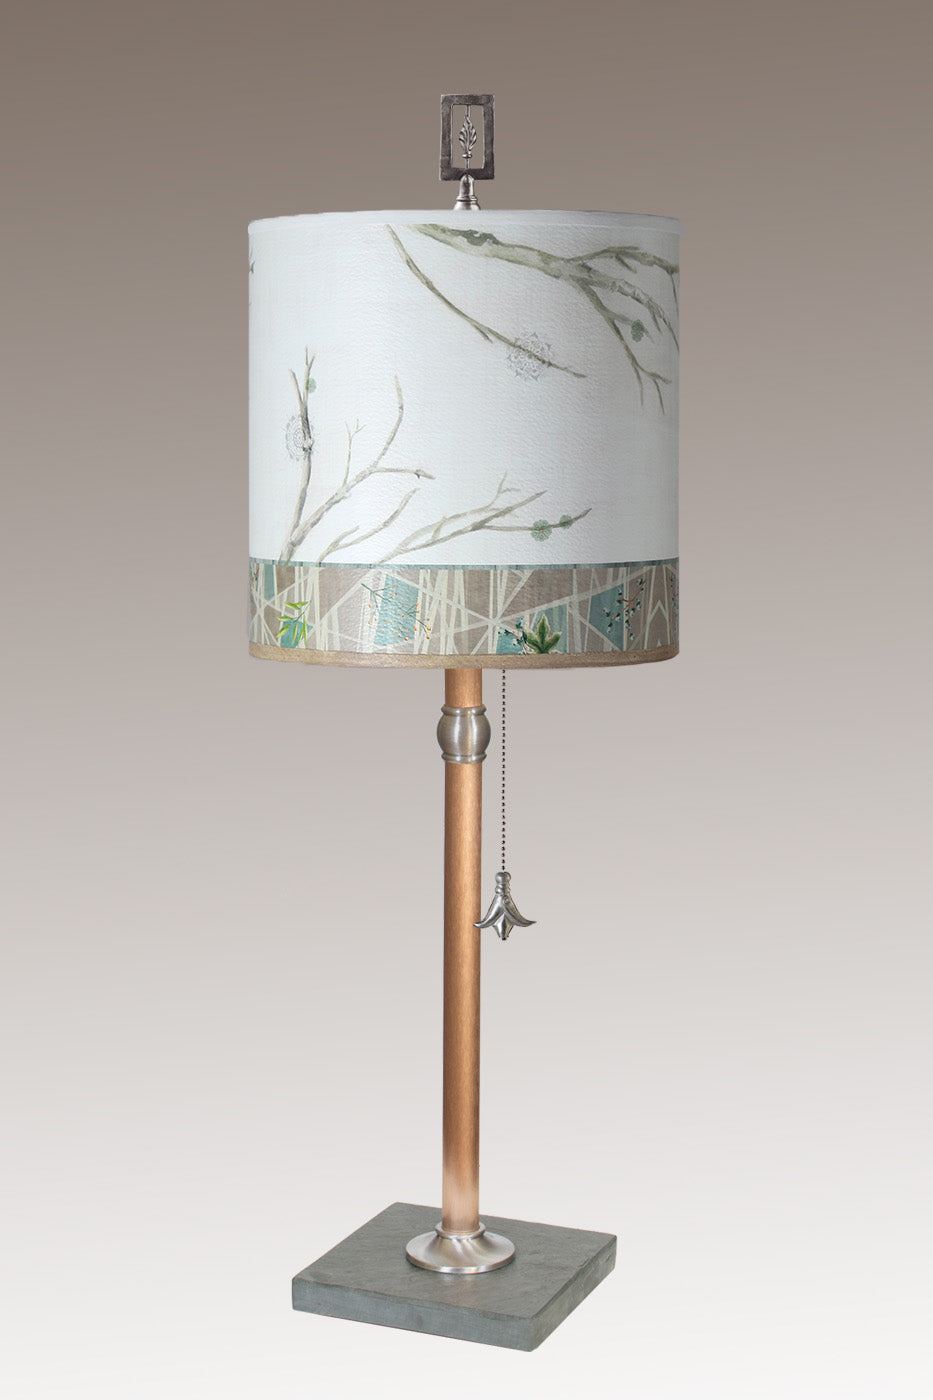 Copper Table Lamp with Medium Drum Shade in Prism Branch